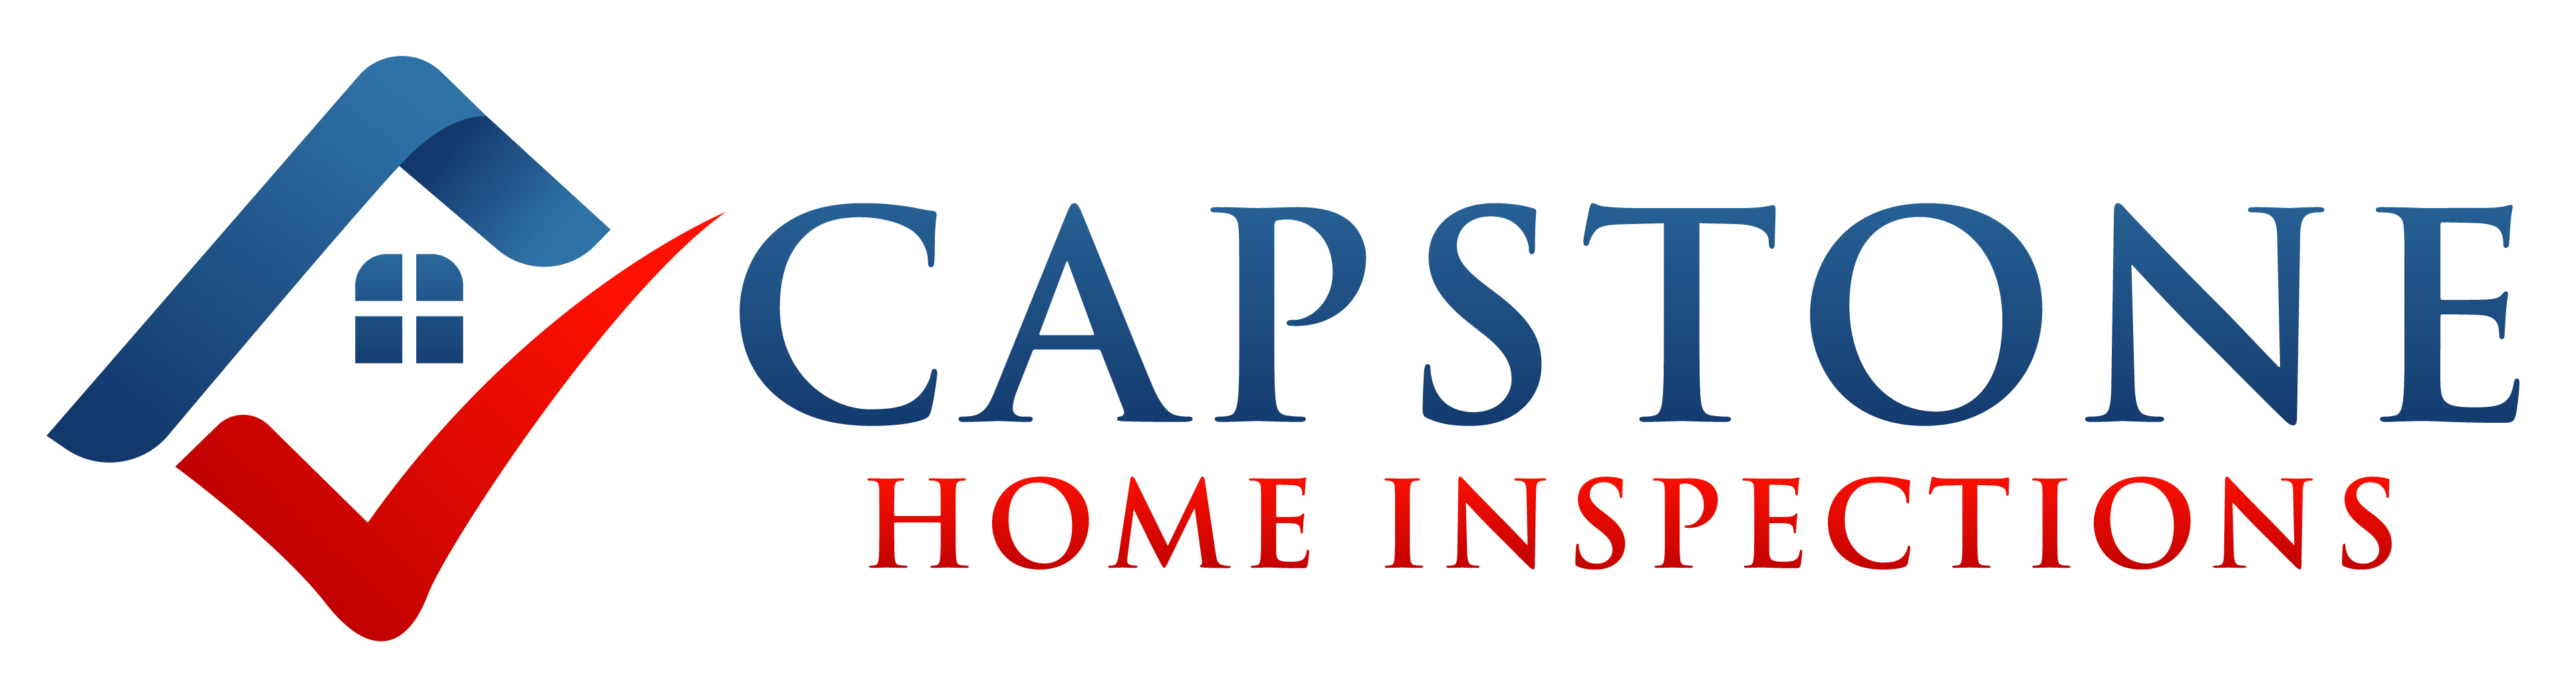 Capstone Home Inspections